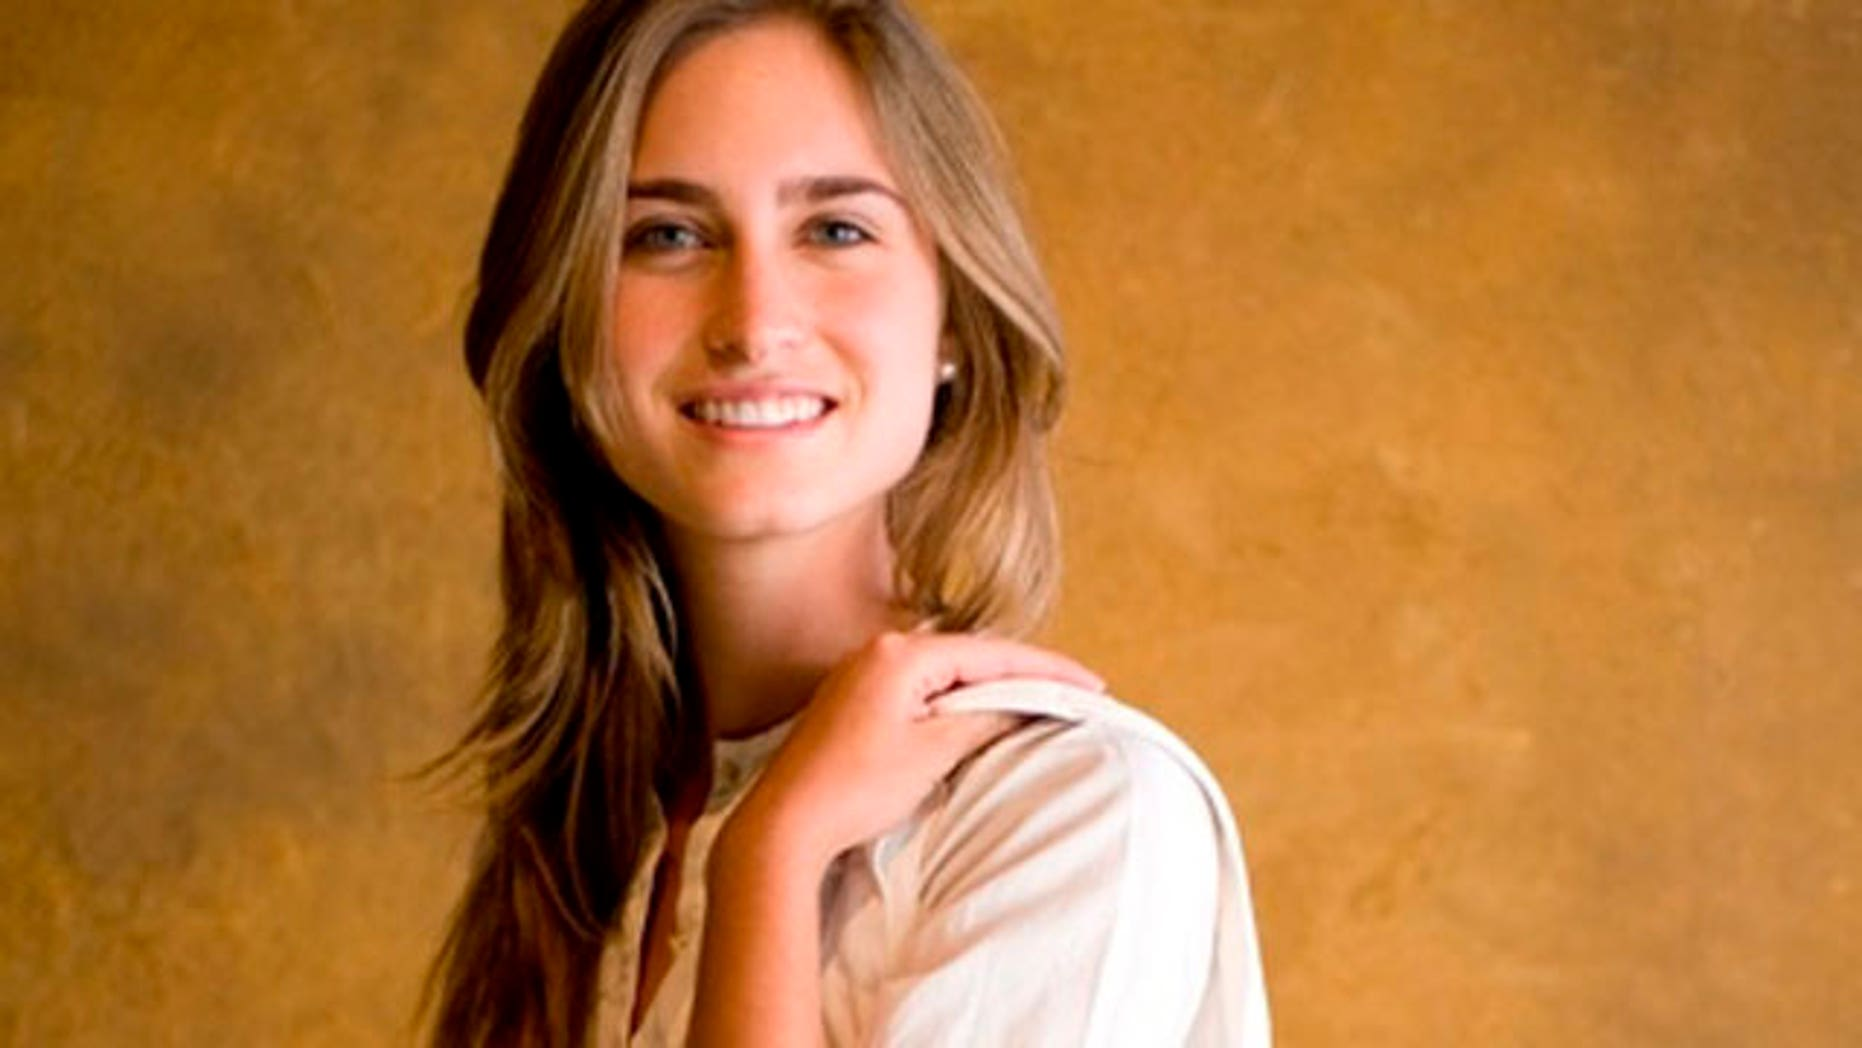 Lauren Bush, who became a vegetarian at a young age, has high hopes that Washington D.C can help. (Rein Skullerud)